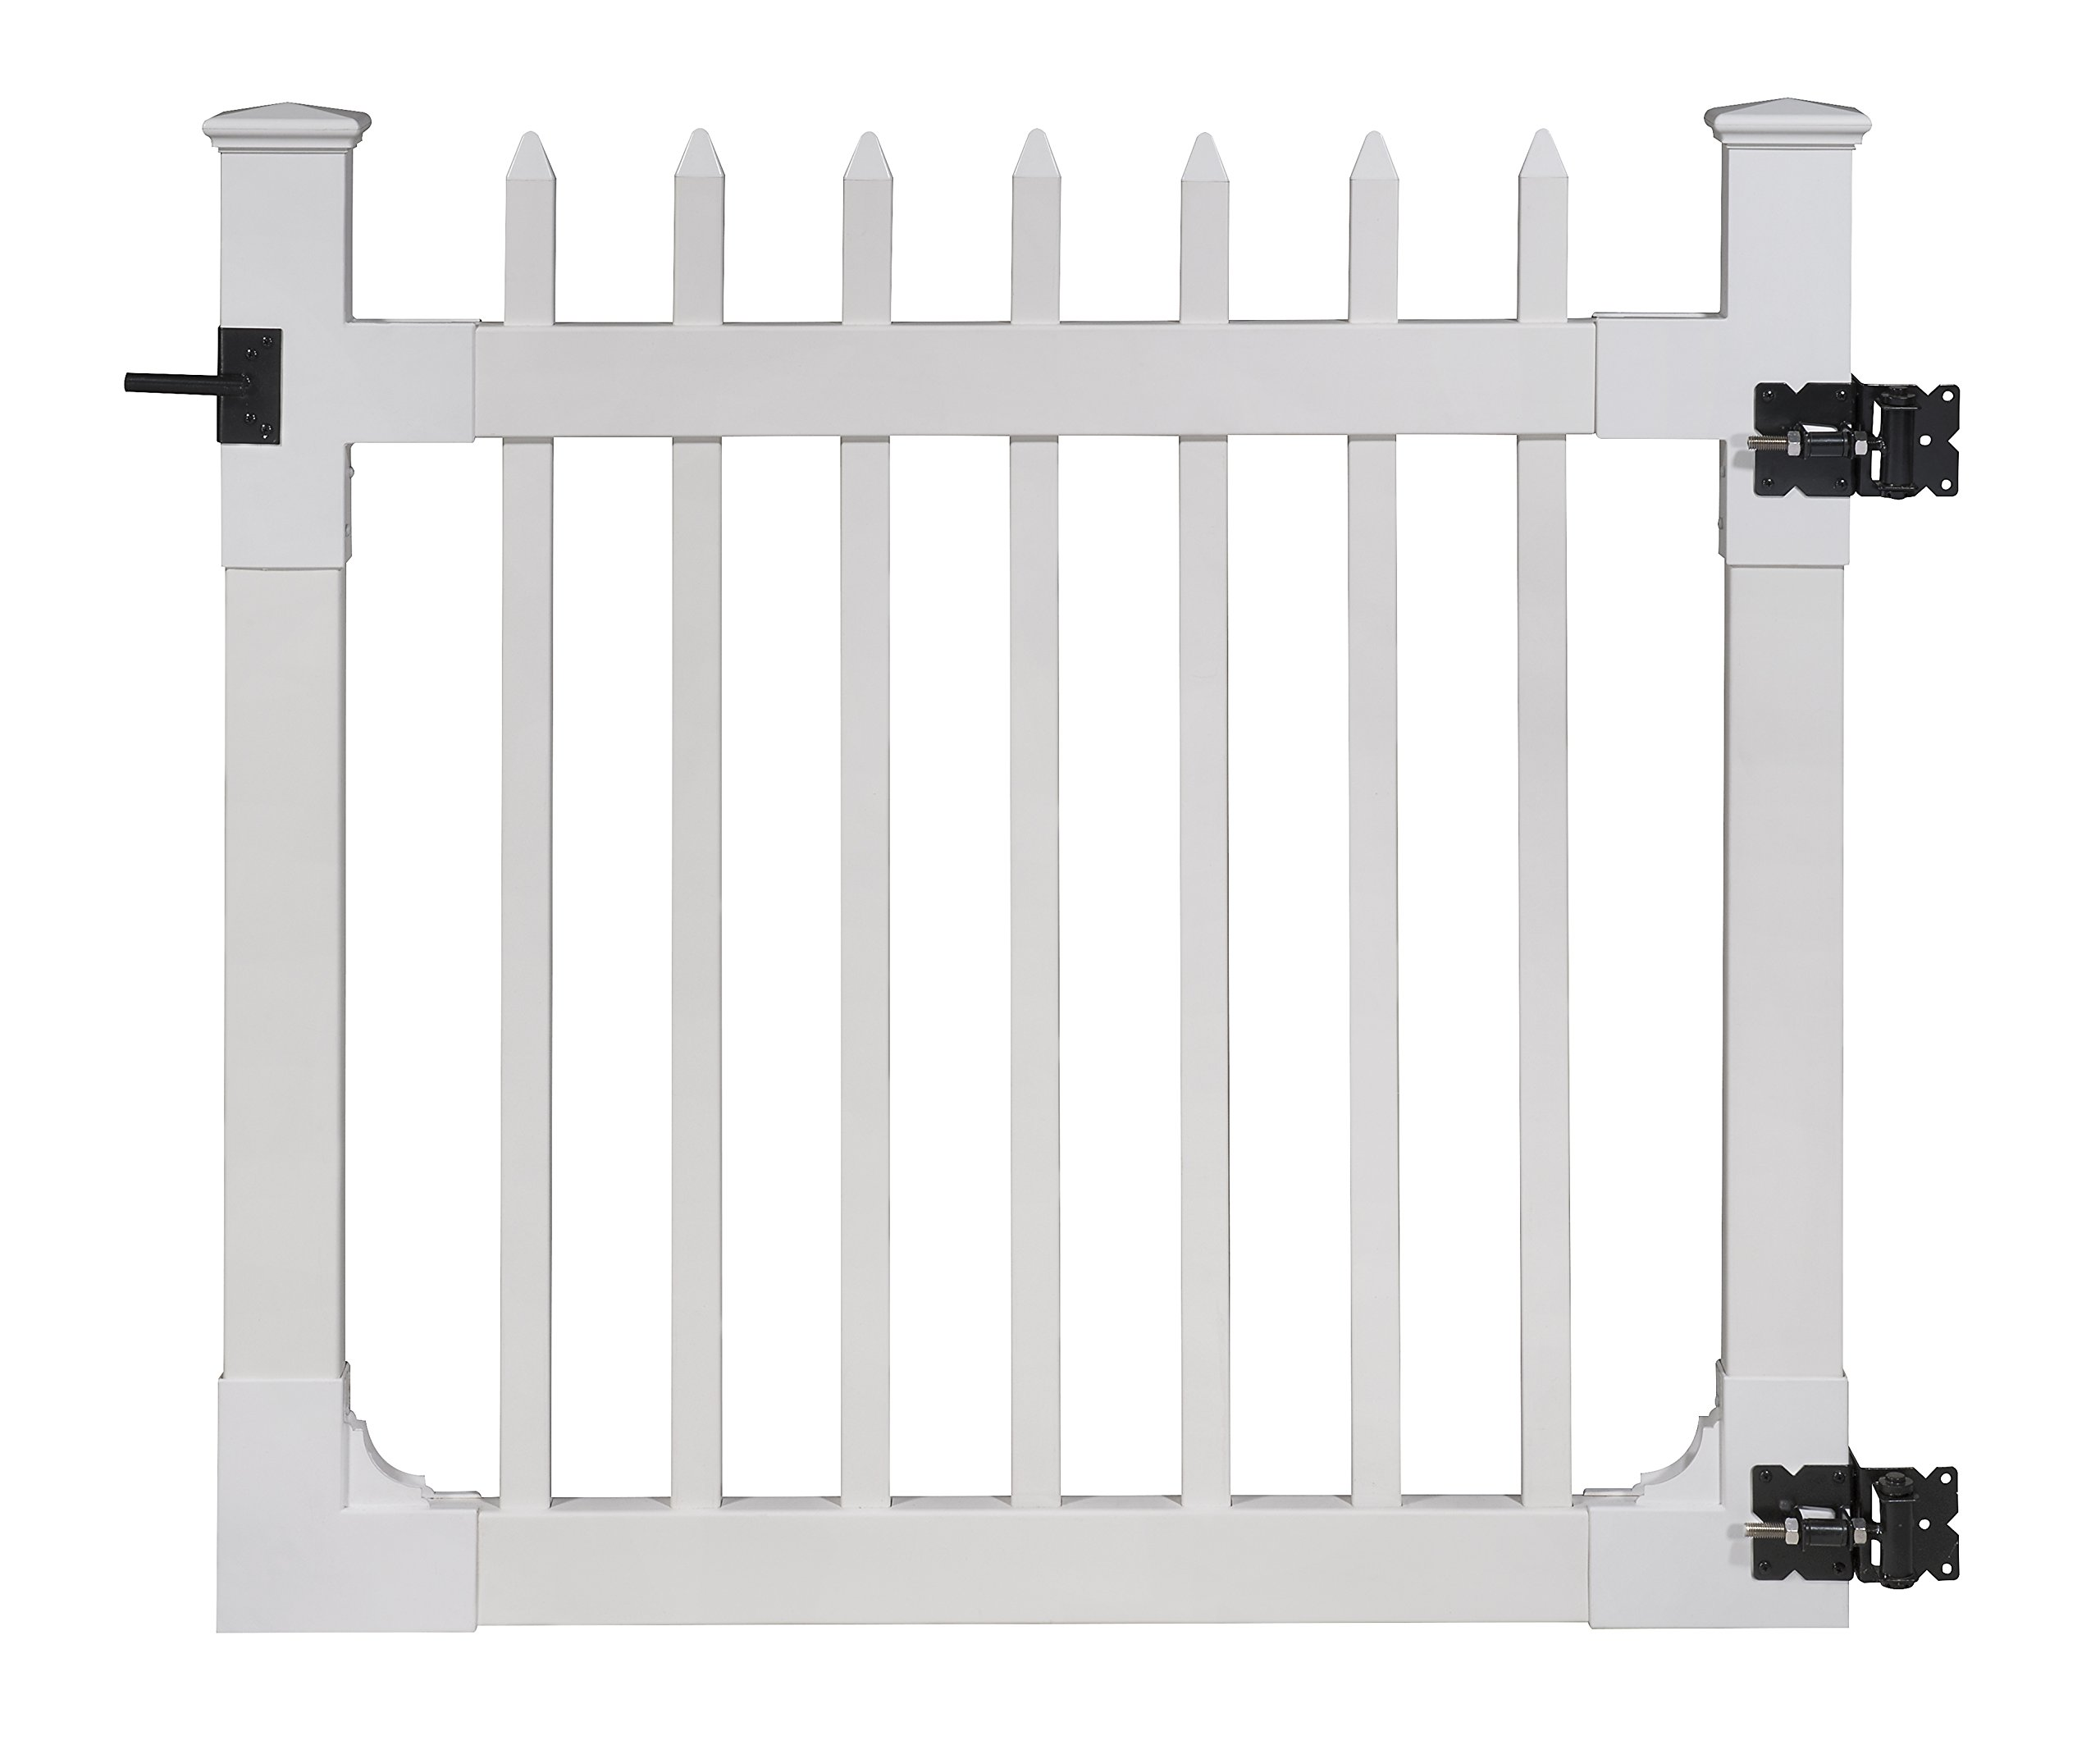 WamBam Nantucket Vinyl Picket Gate with Stainless Steel Hardware, 48'' High by 48'' Wide